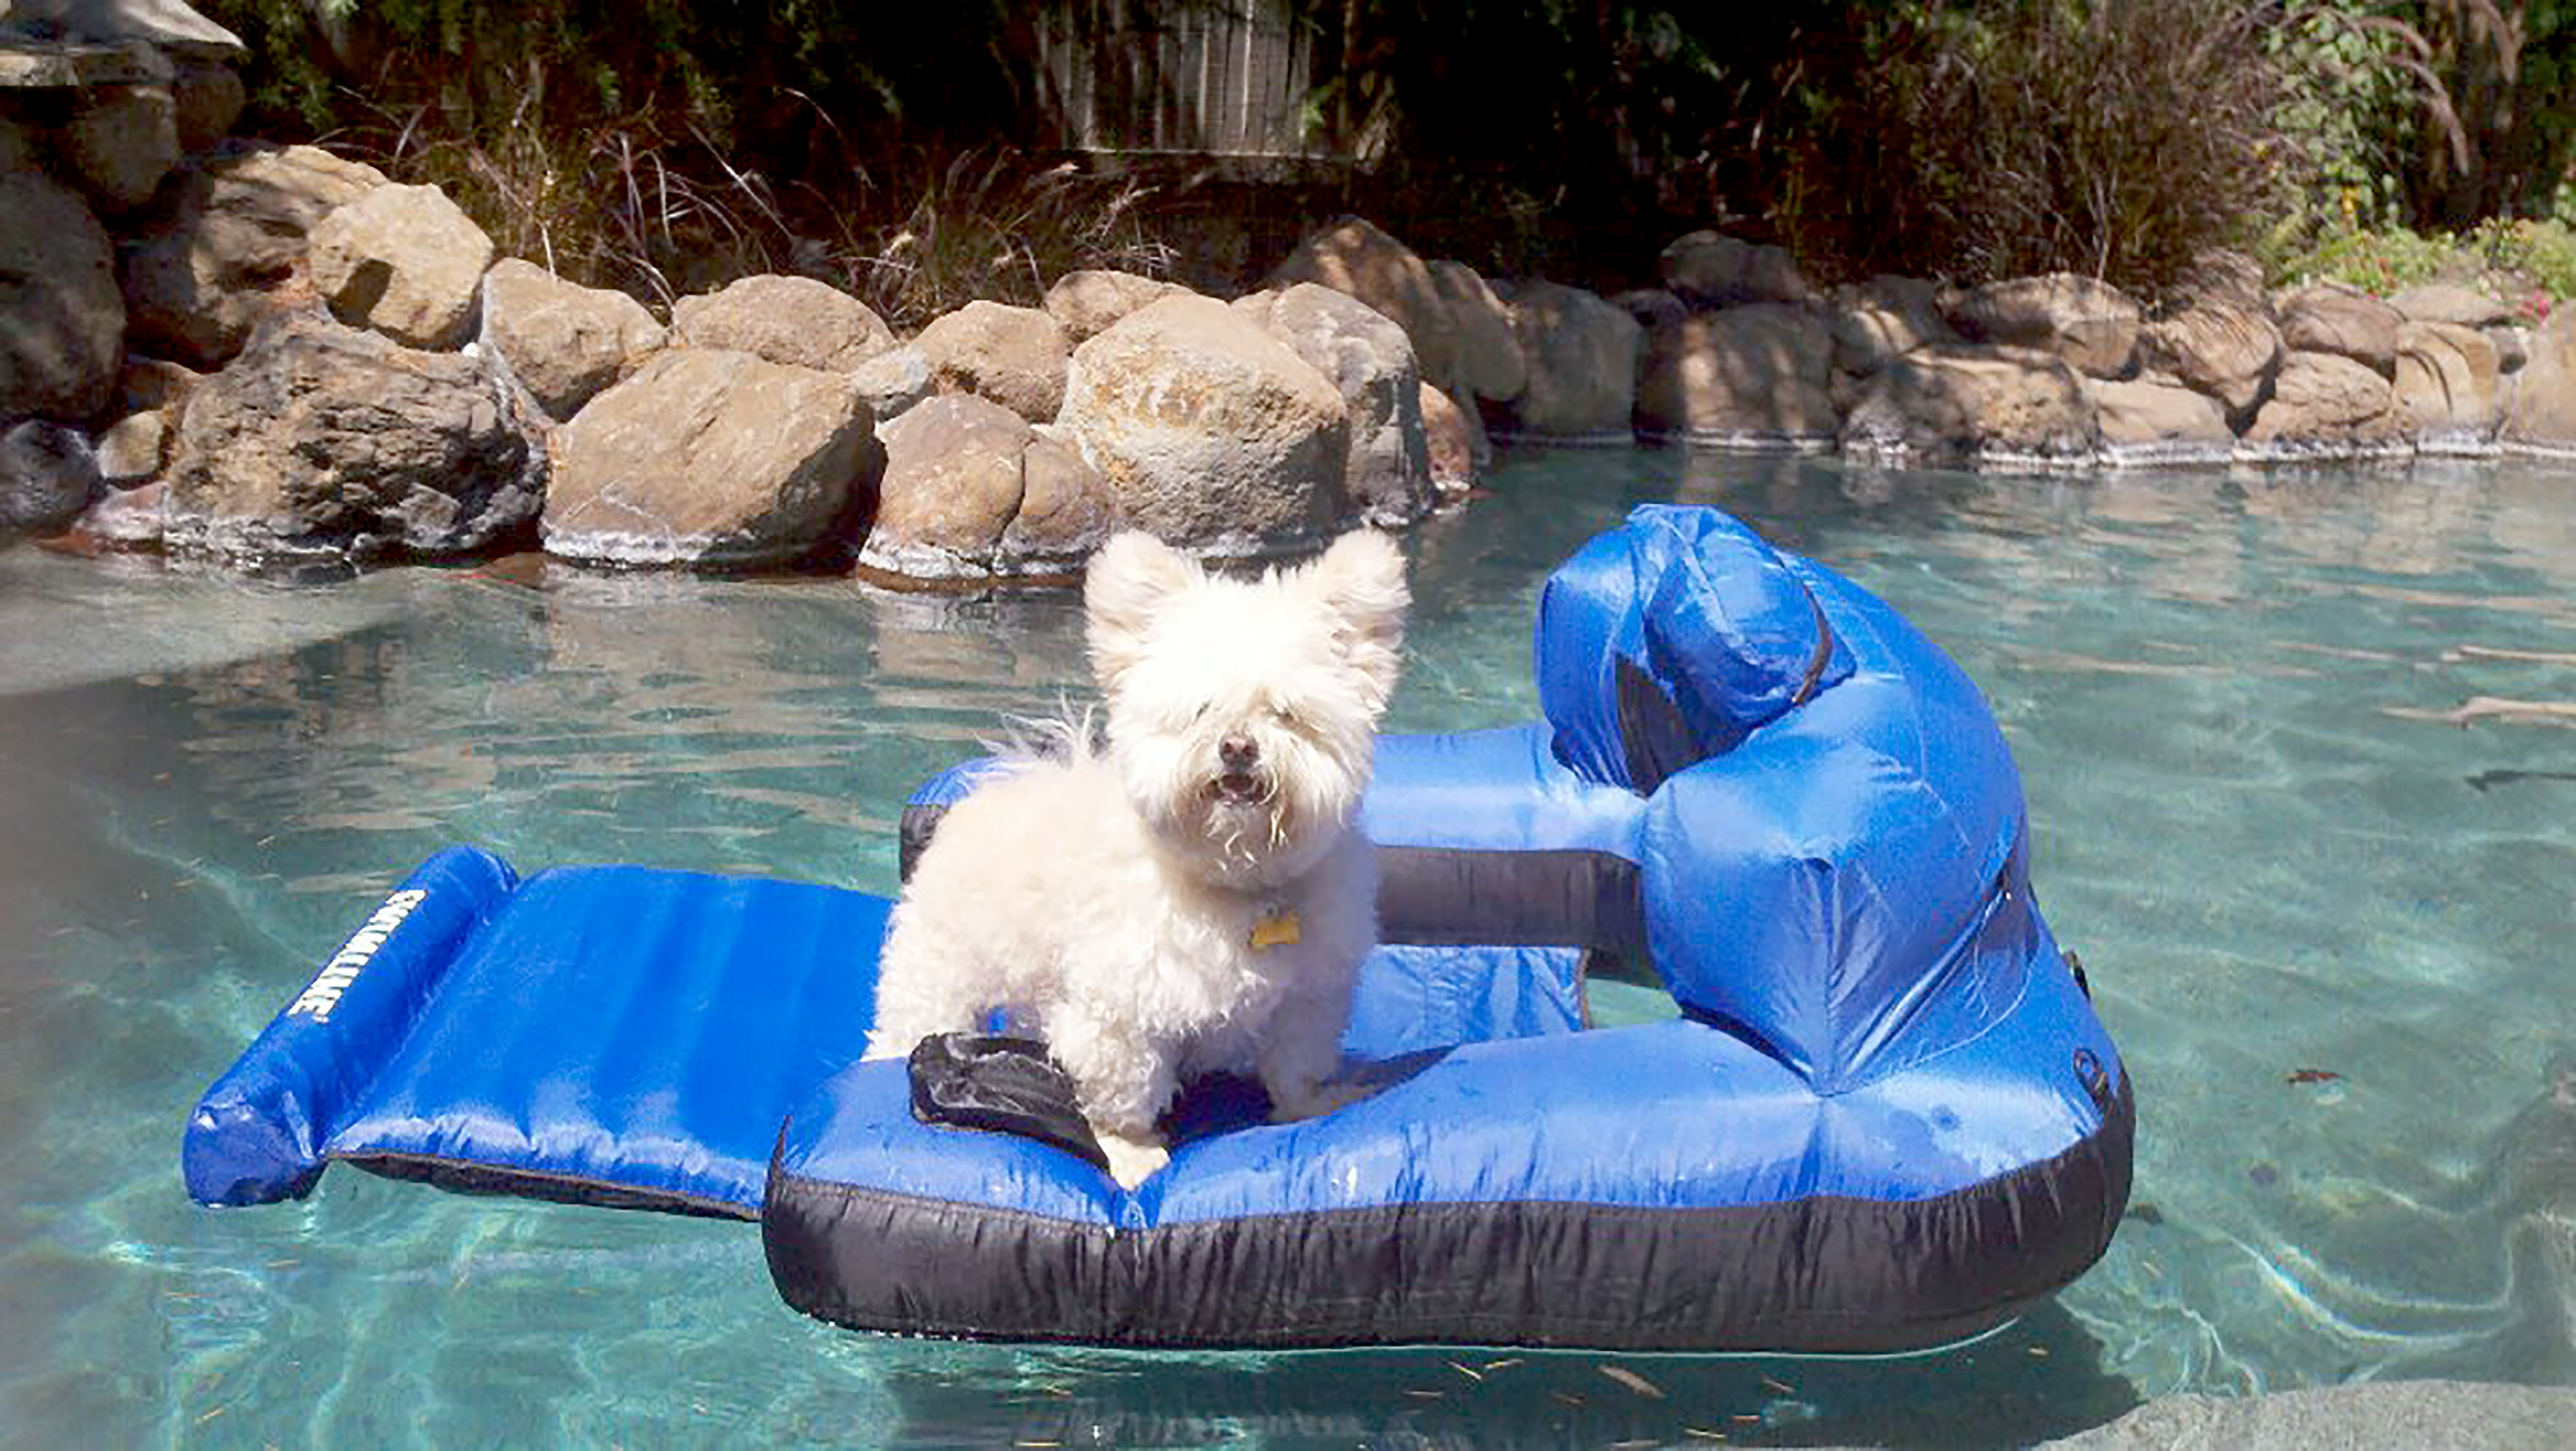 Gizmo loving life on a pool inflatable. Credit: Kennedy News and Media